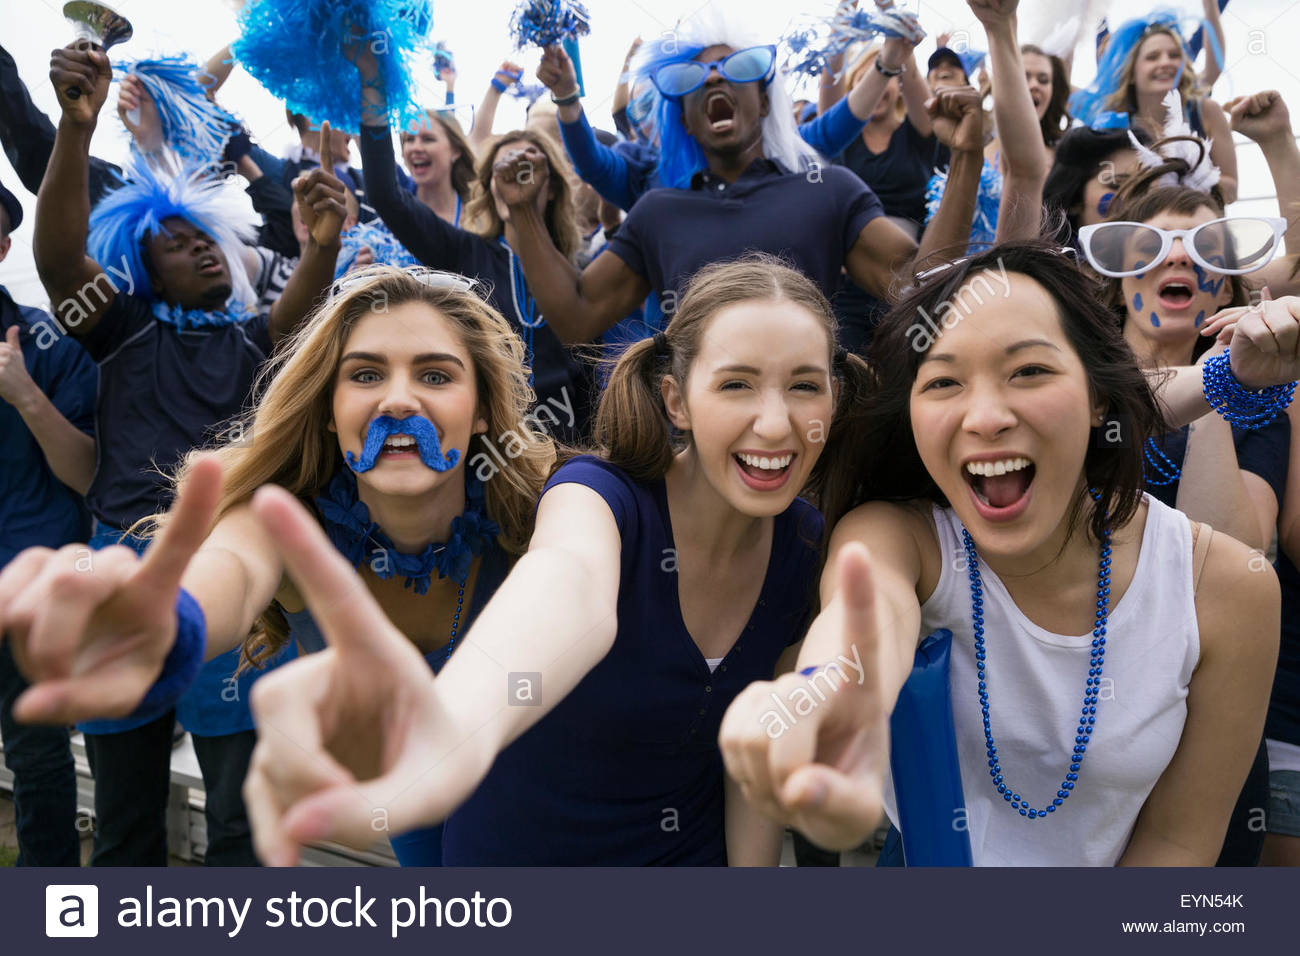 Portrait enthusiastic female fans gesturing number one bleachers - Stock Image